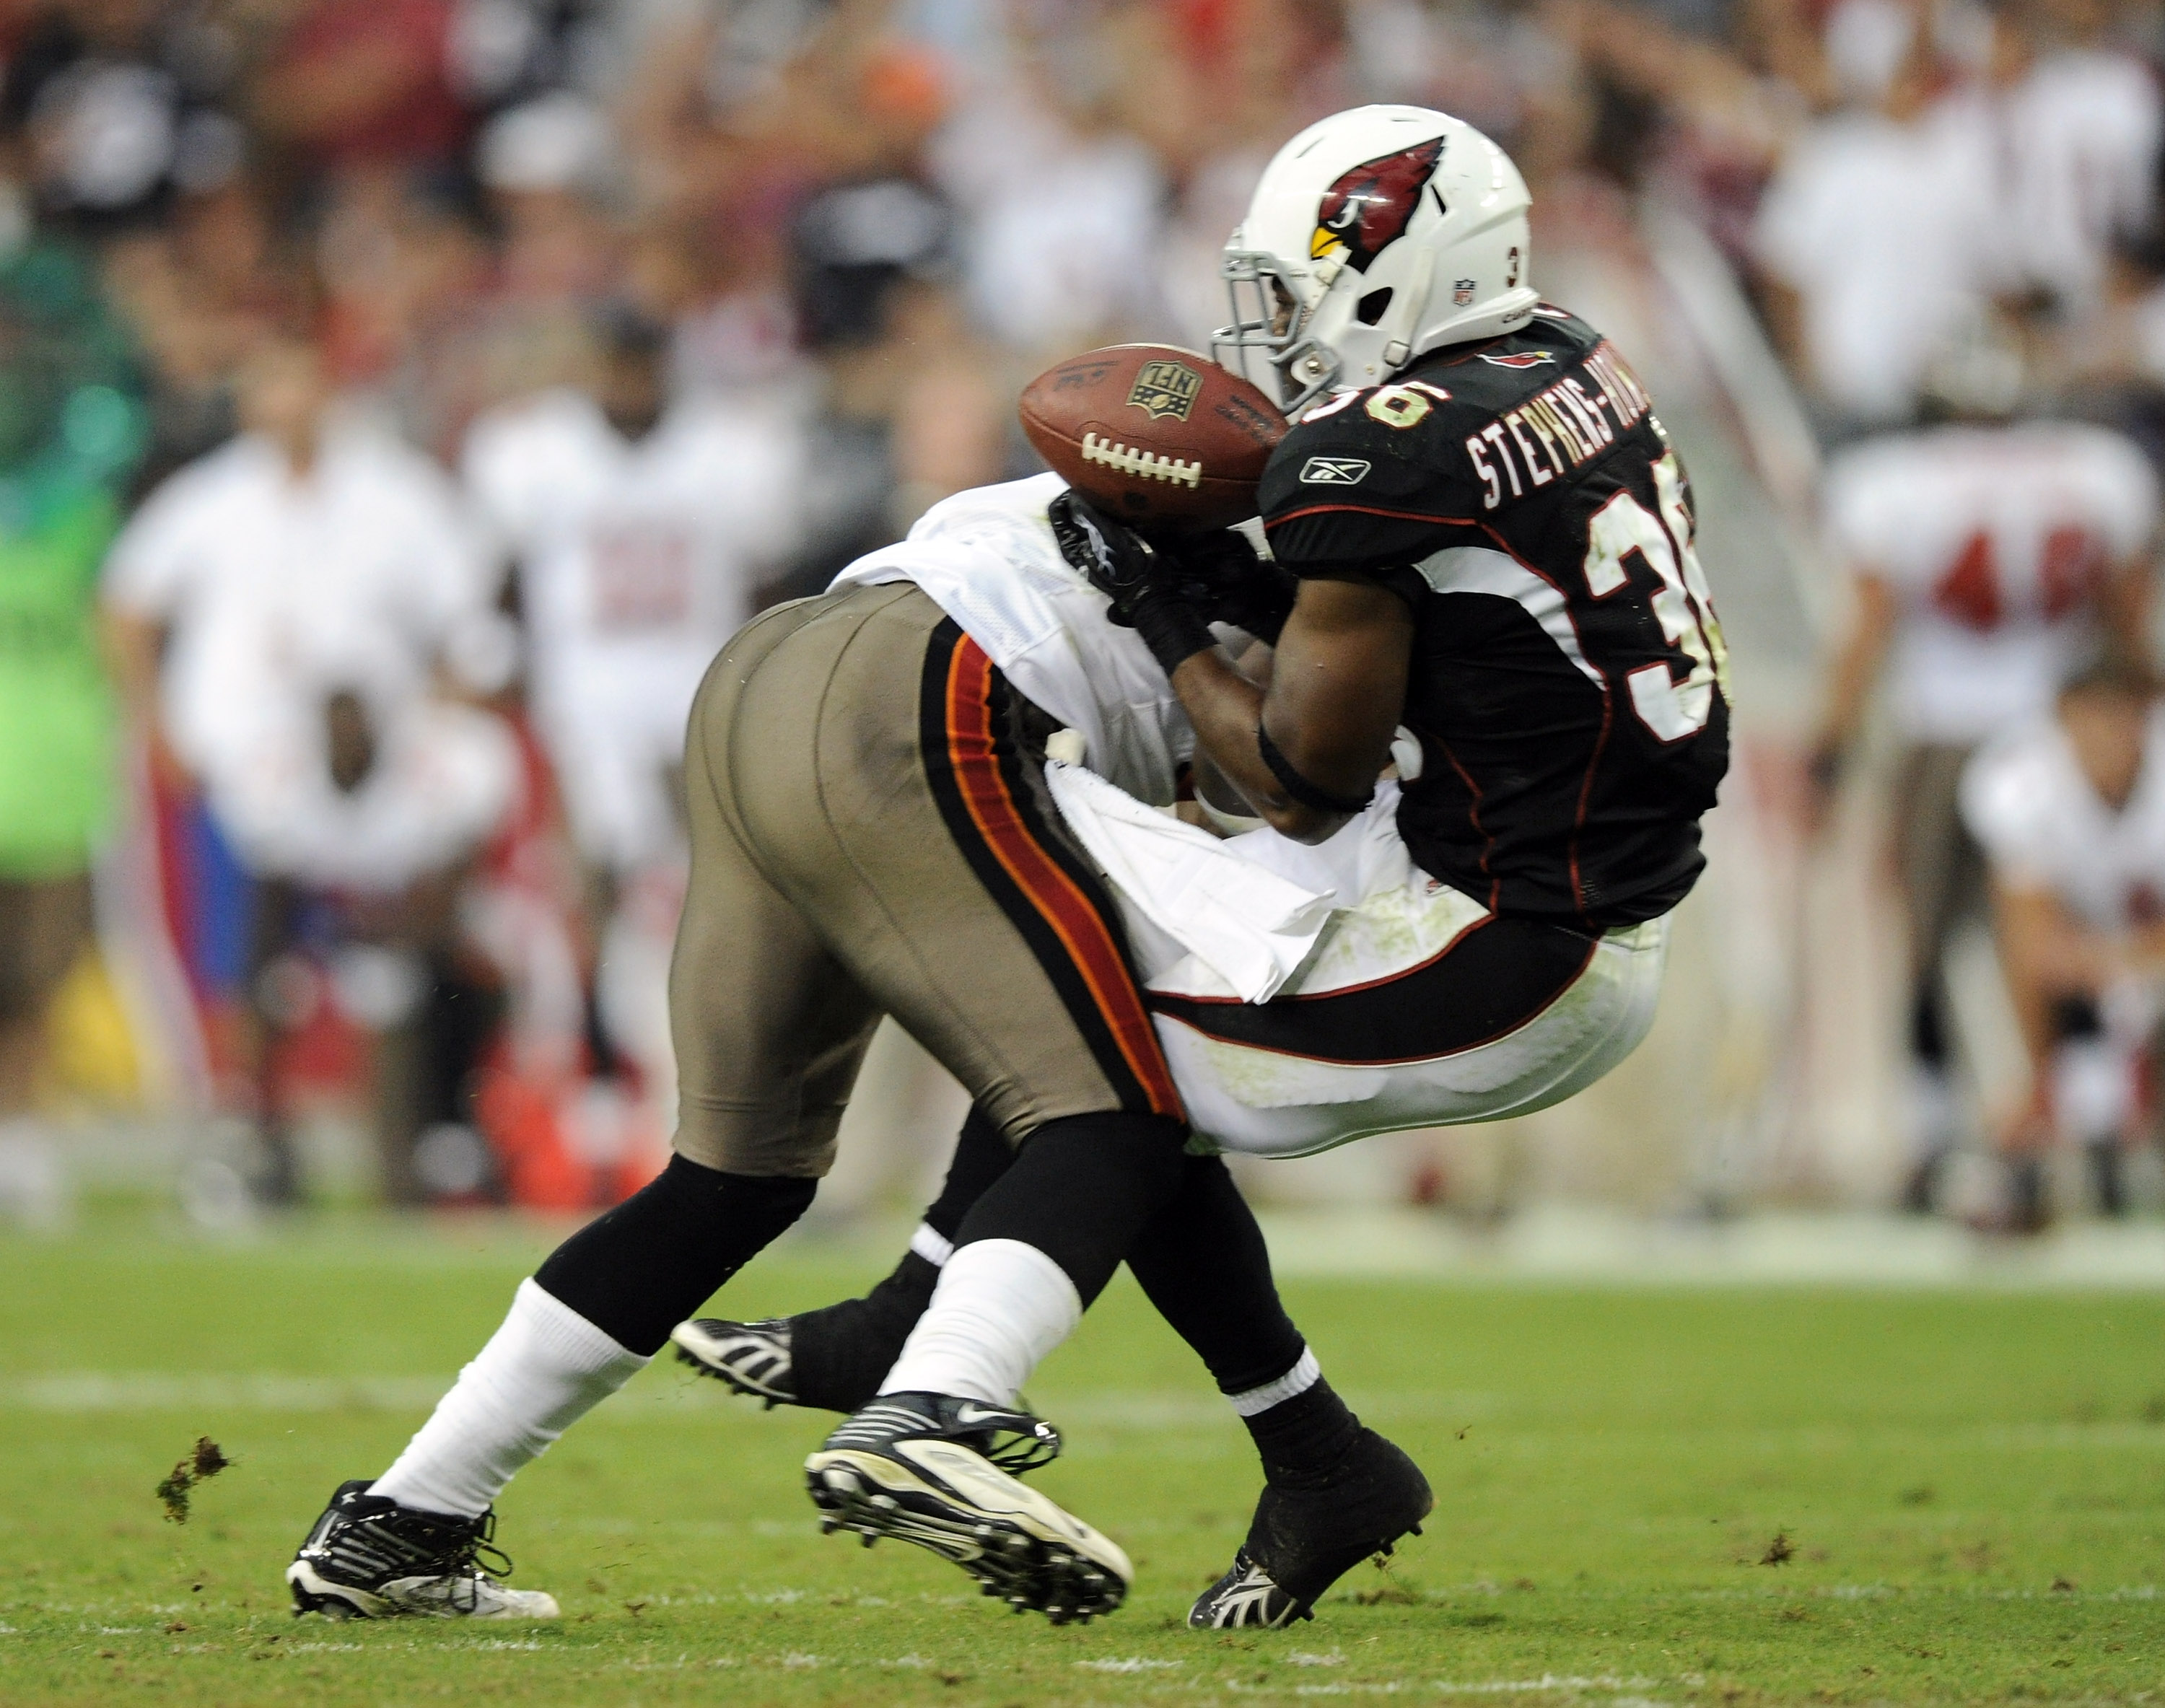 GLENDALE, AZ - OCTOBER 31:  LaRod Stephens-Howling #36 of the Arizona Cardinals takes a hit from Geno Hayes #54 of the Tampa Bay Buccaneers resulting in an interception and injury during the fourth quarter at University of Phoenix Stadium on October 31, 2